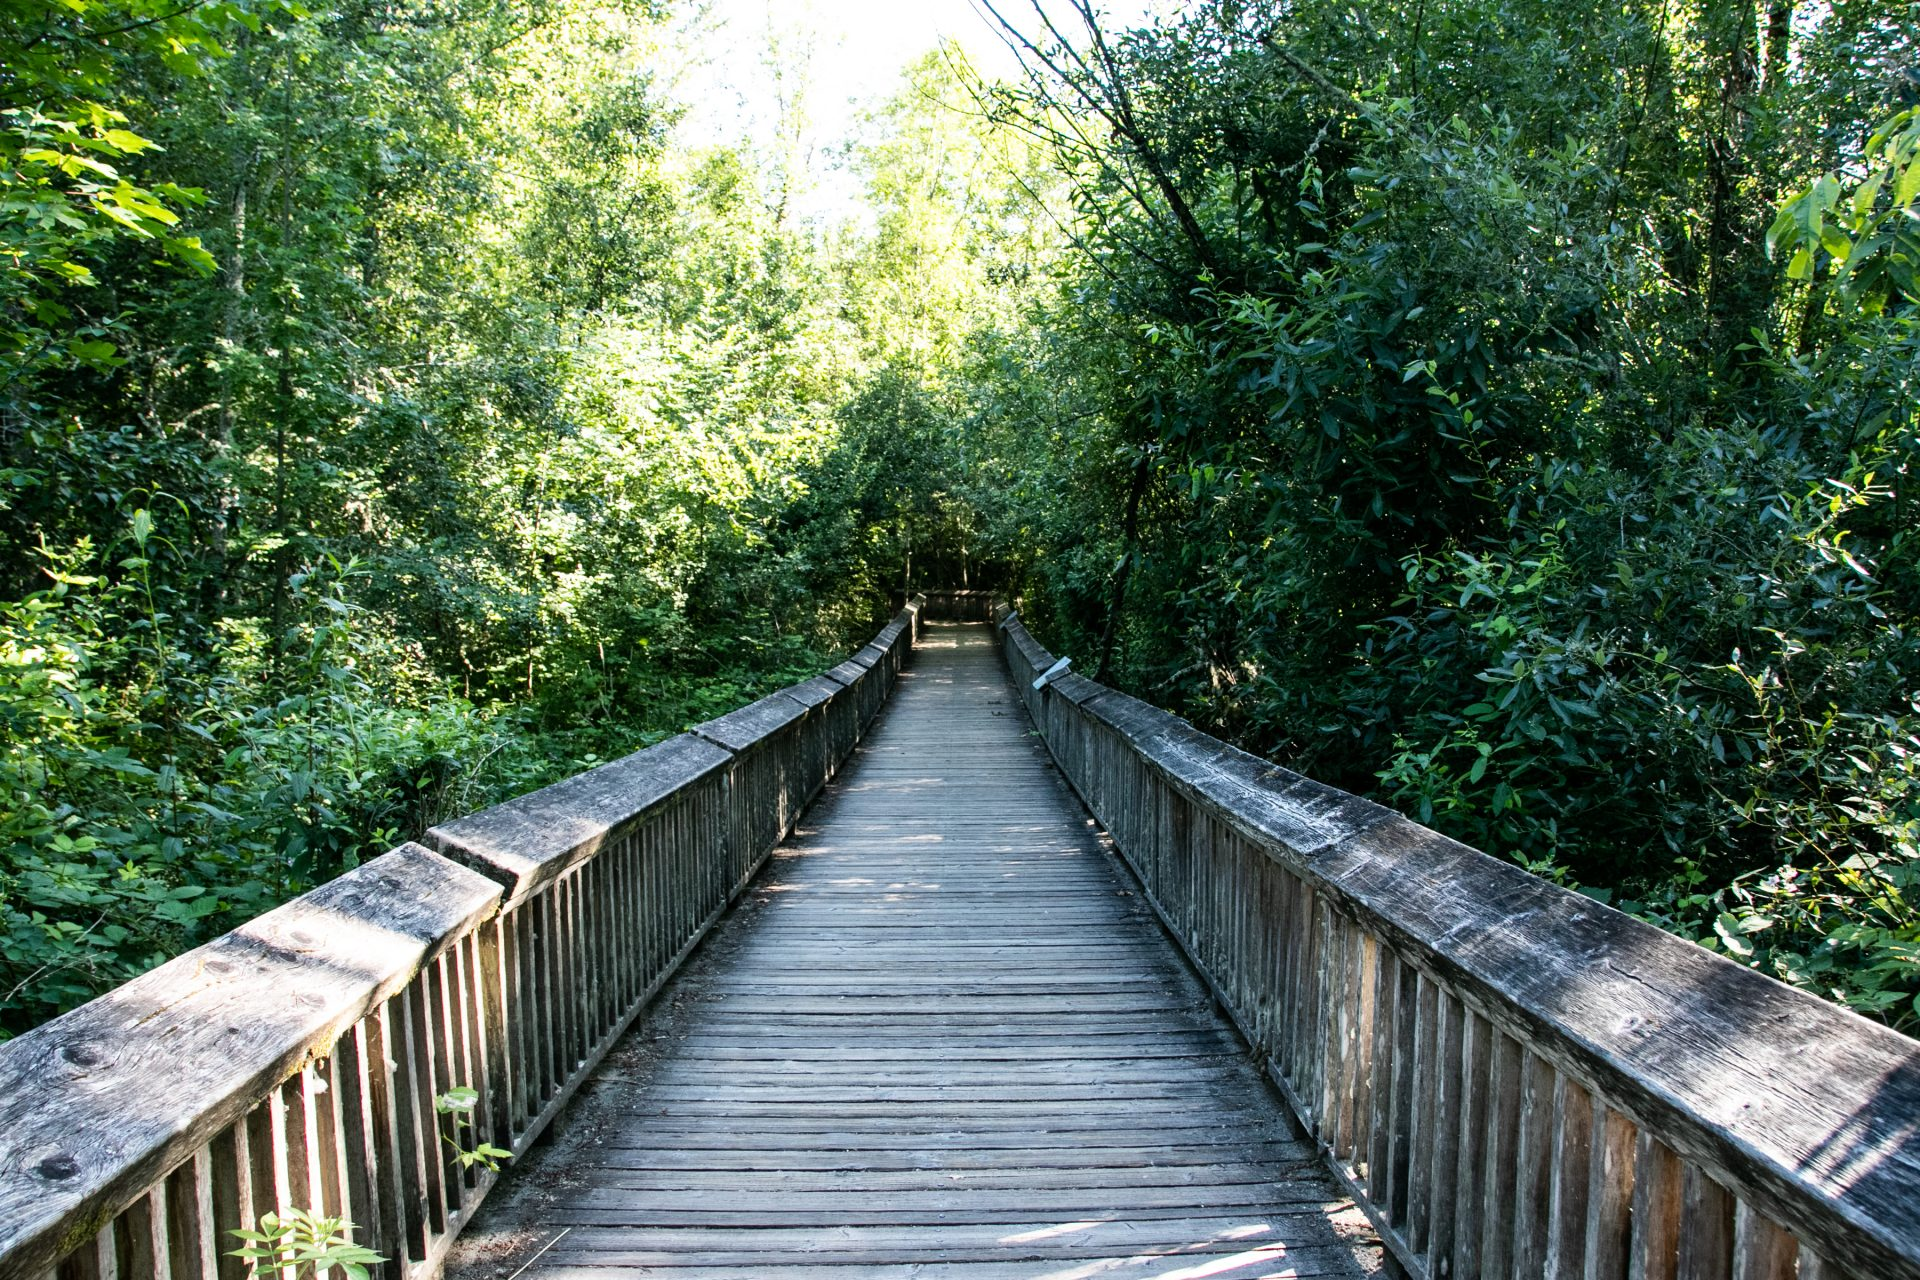 Long Boardwalk Through Woods